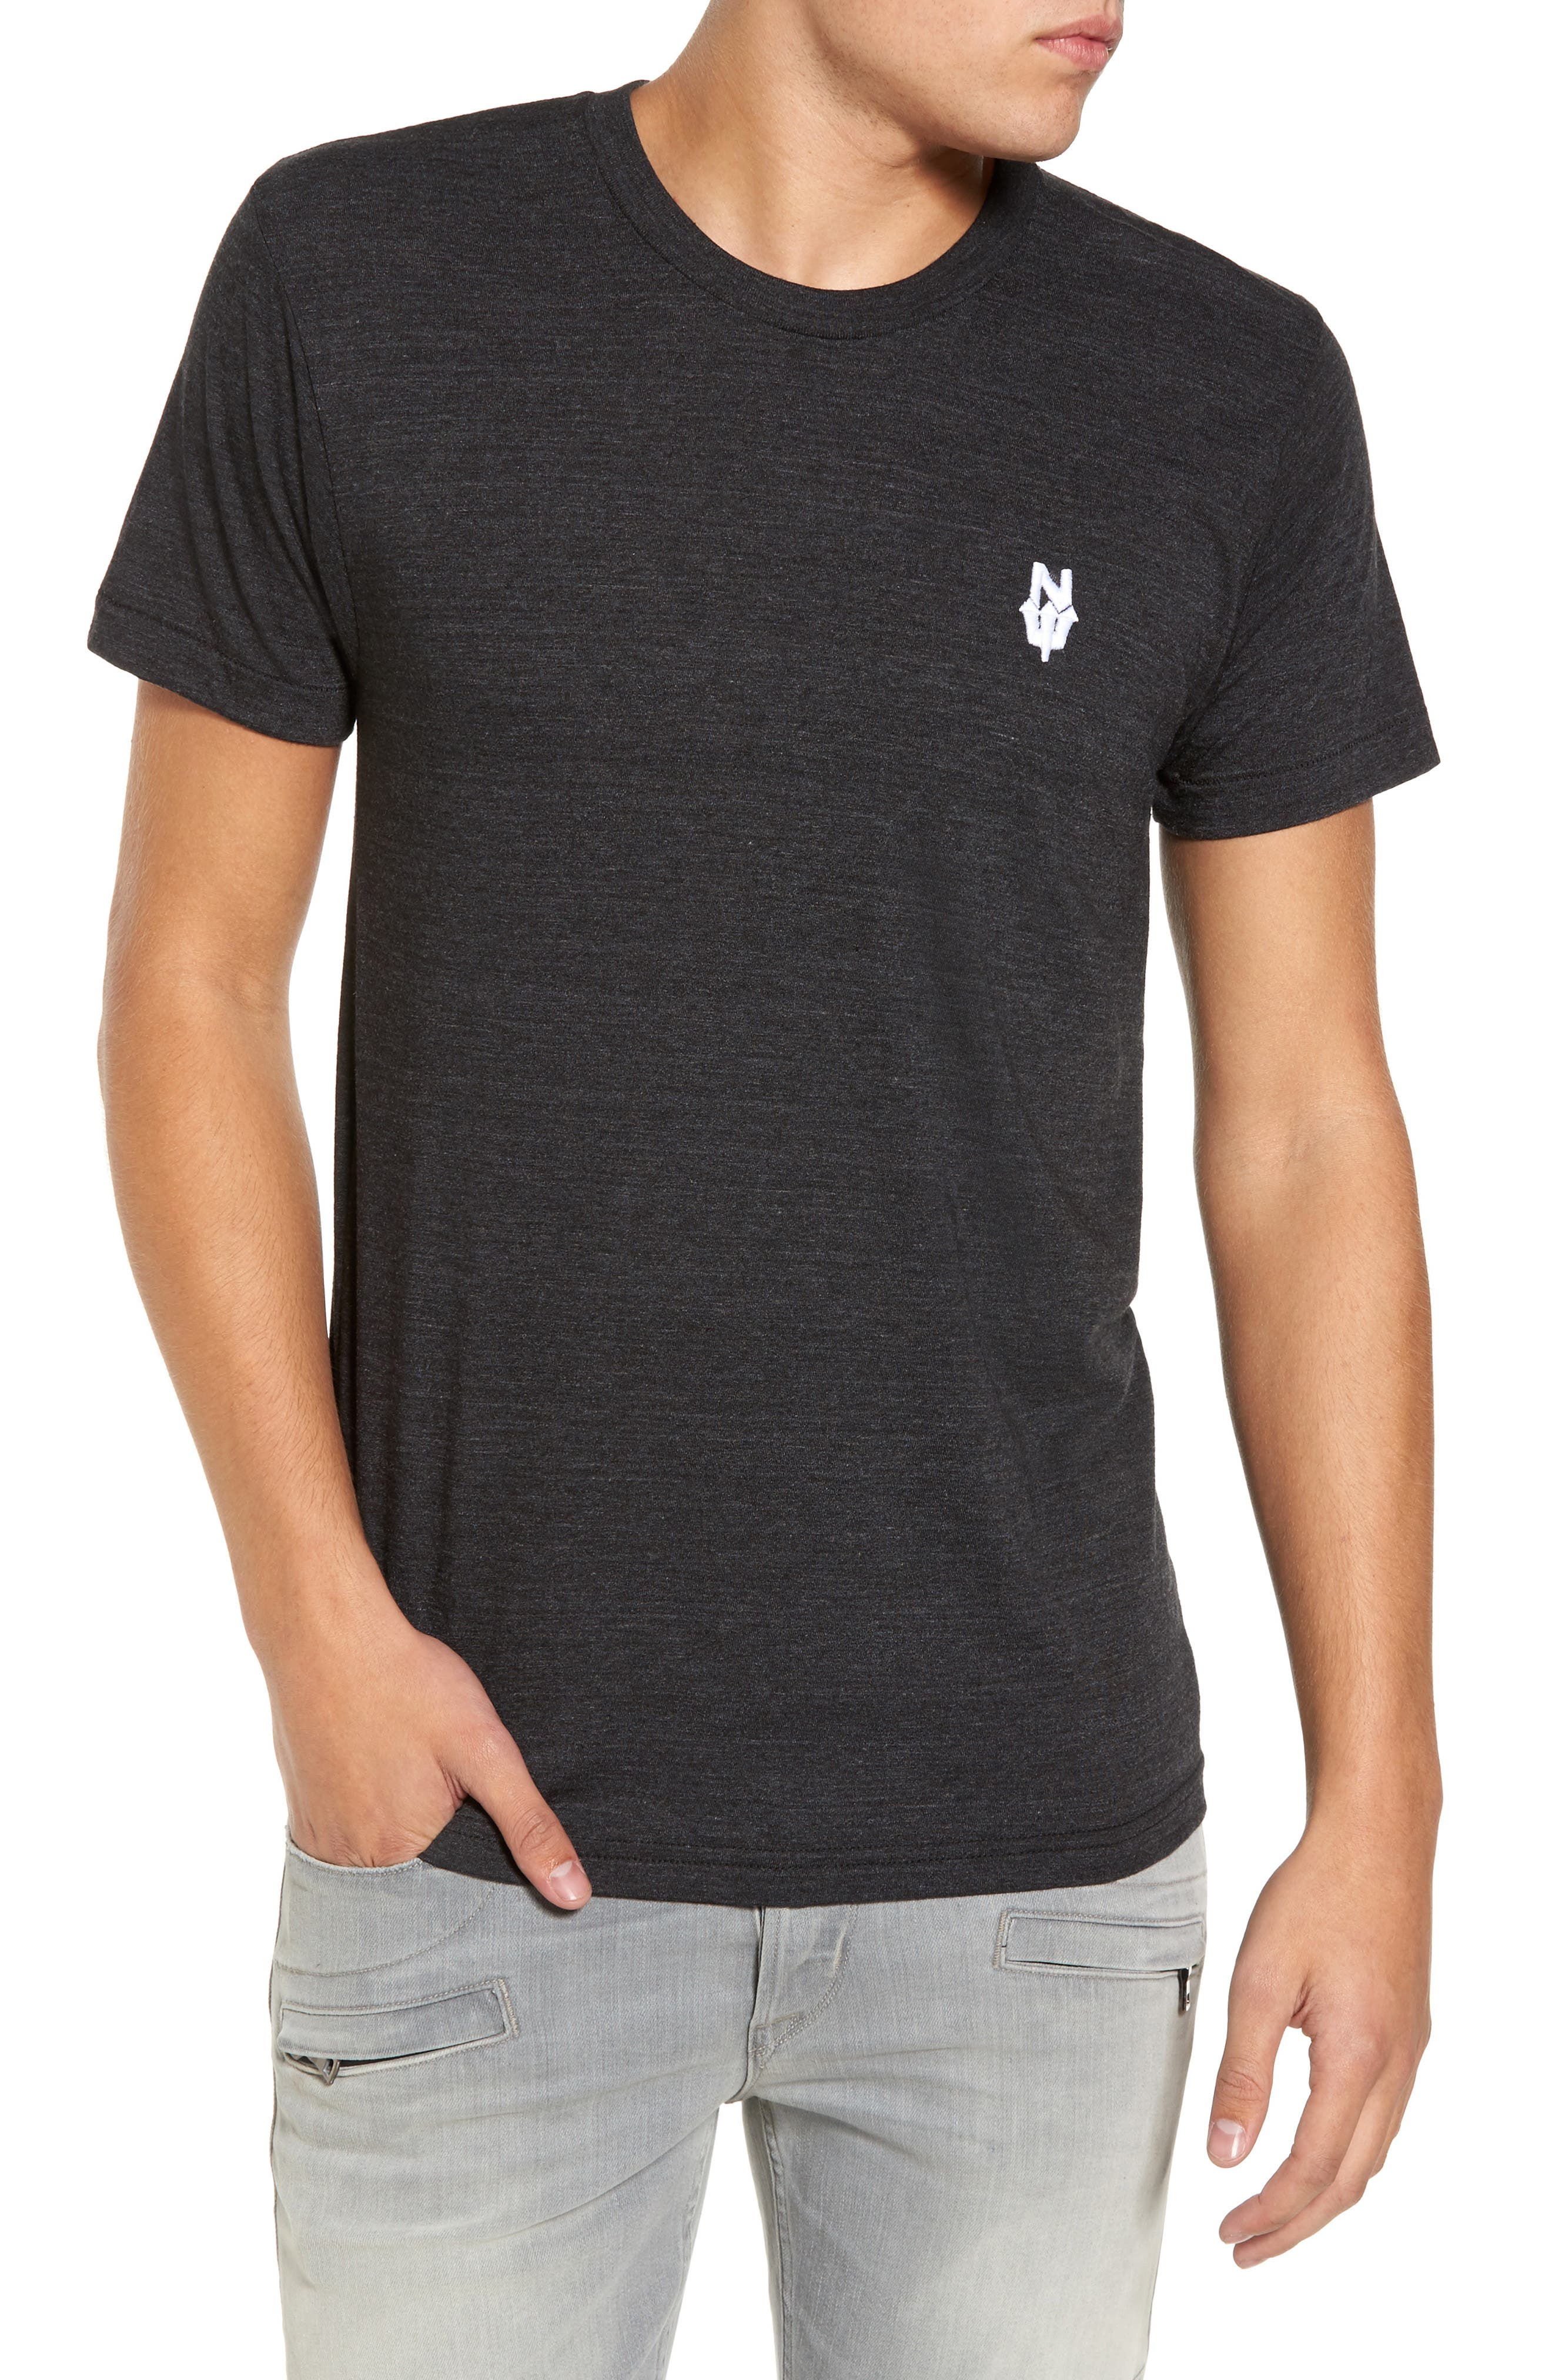 NW Trident Embroidered T-Shirt,                         Main,                         color, Black